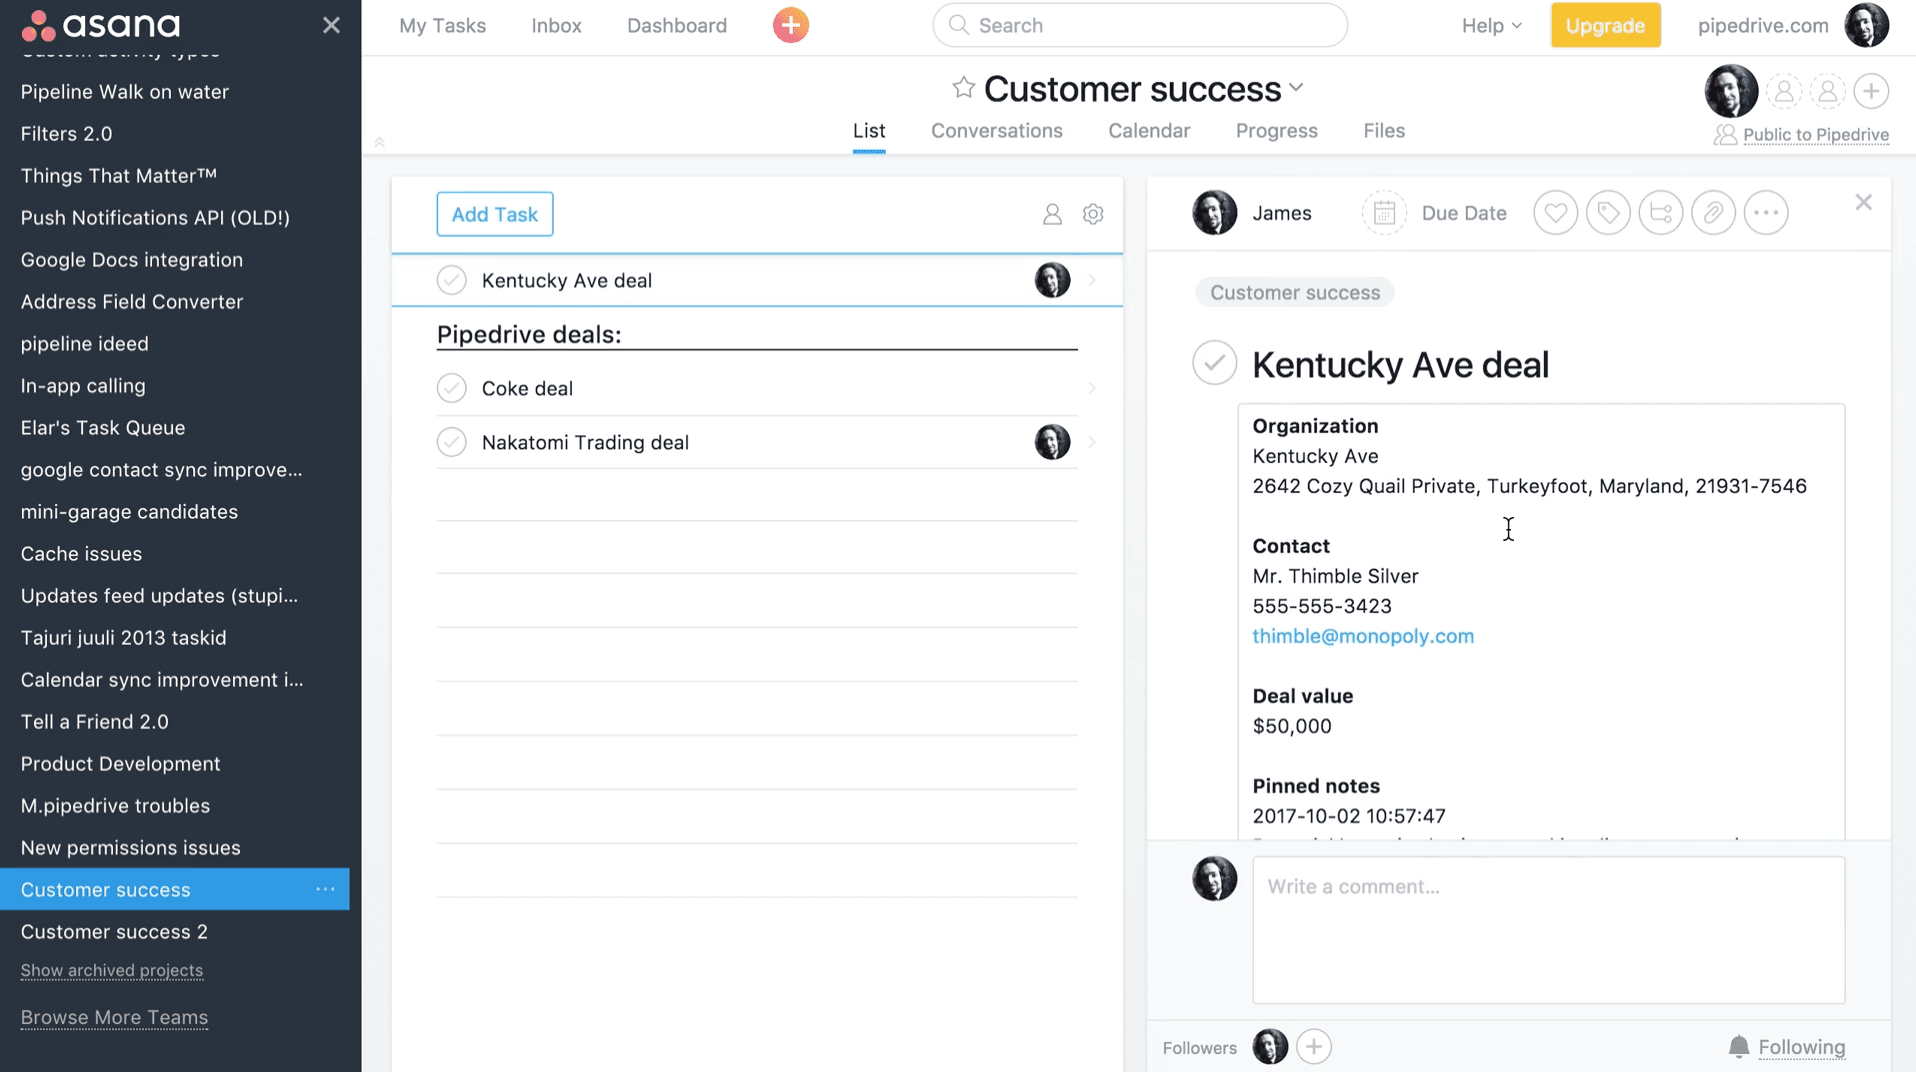 Pipedrive Deals become Asana Tasks Instantly